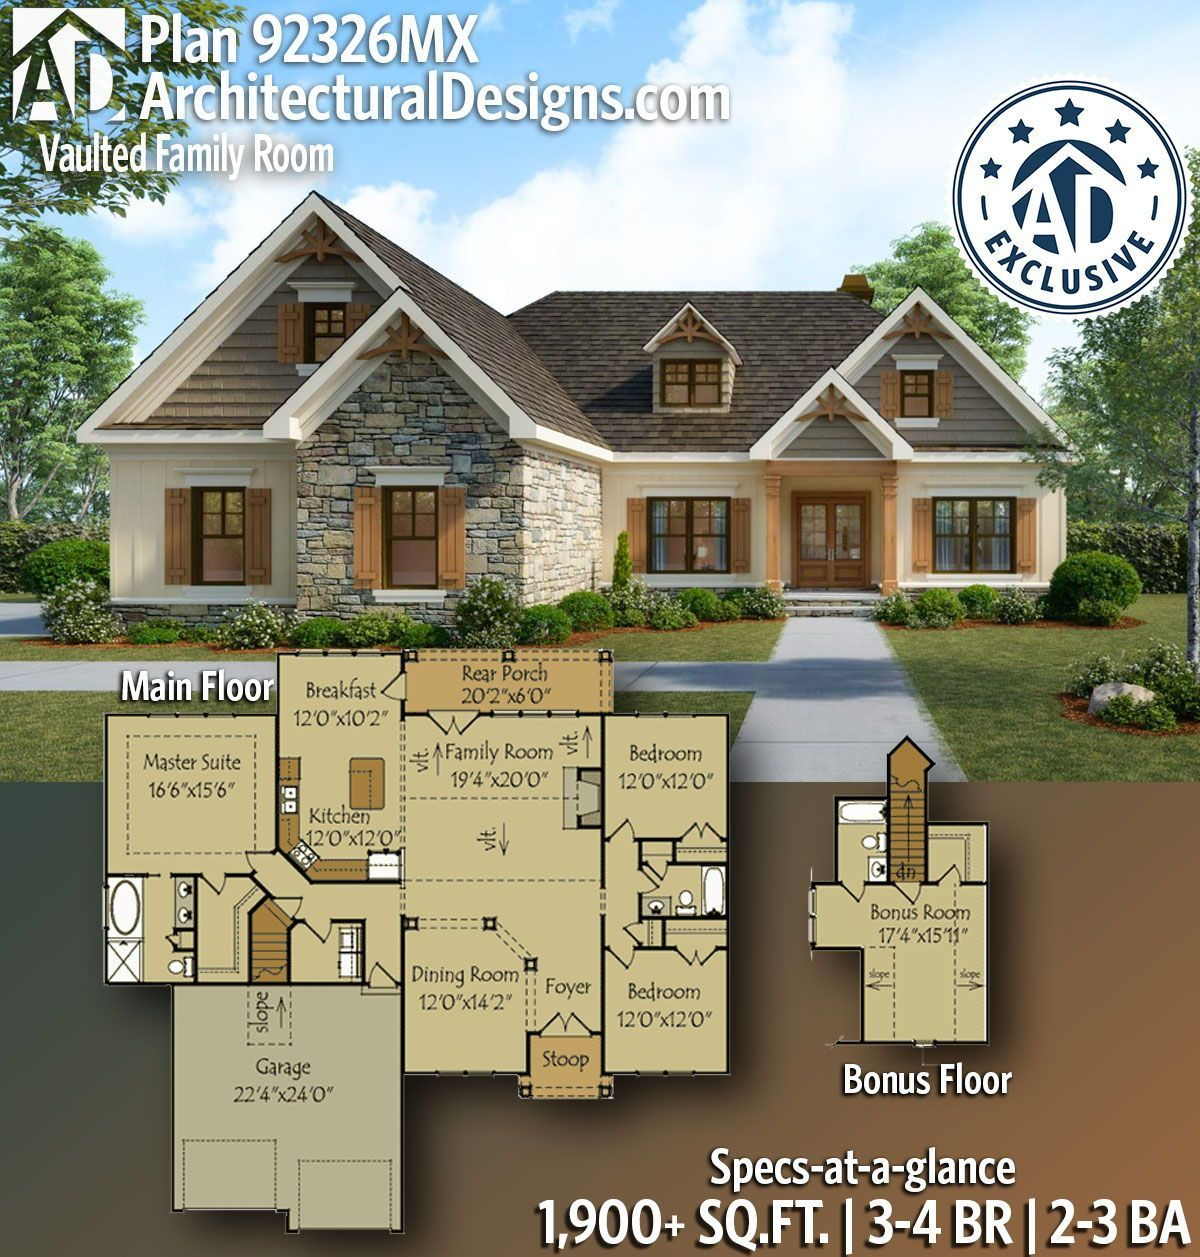 Architecturaldesigns Com Rugged Craftsman Ranch House Plan 92326mx Gives You 1 90 Farmhouse Style House Plans Craftsman Style House Plans Craftsman House Plans